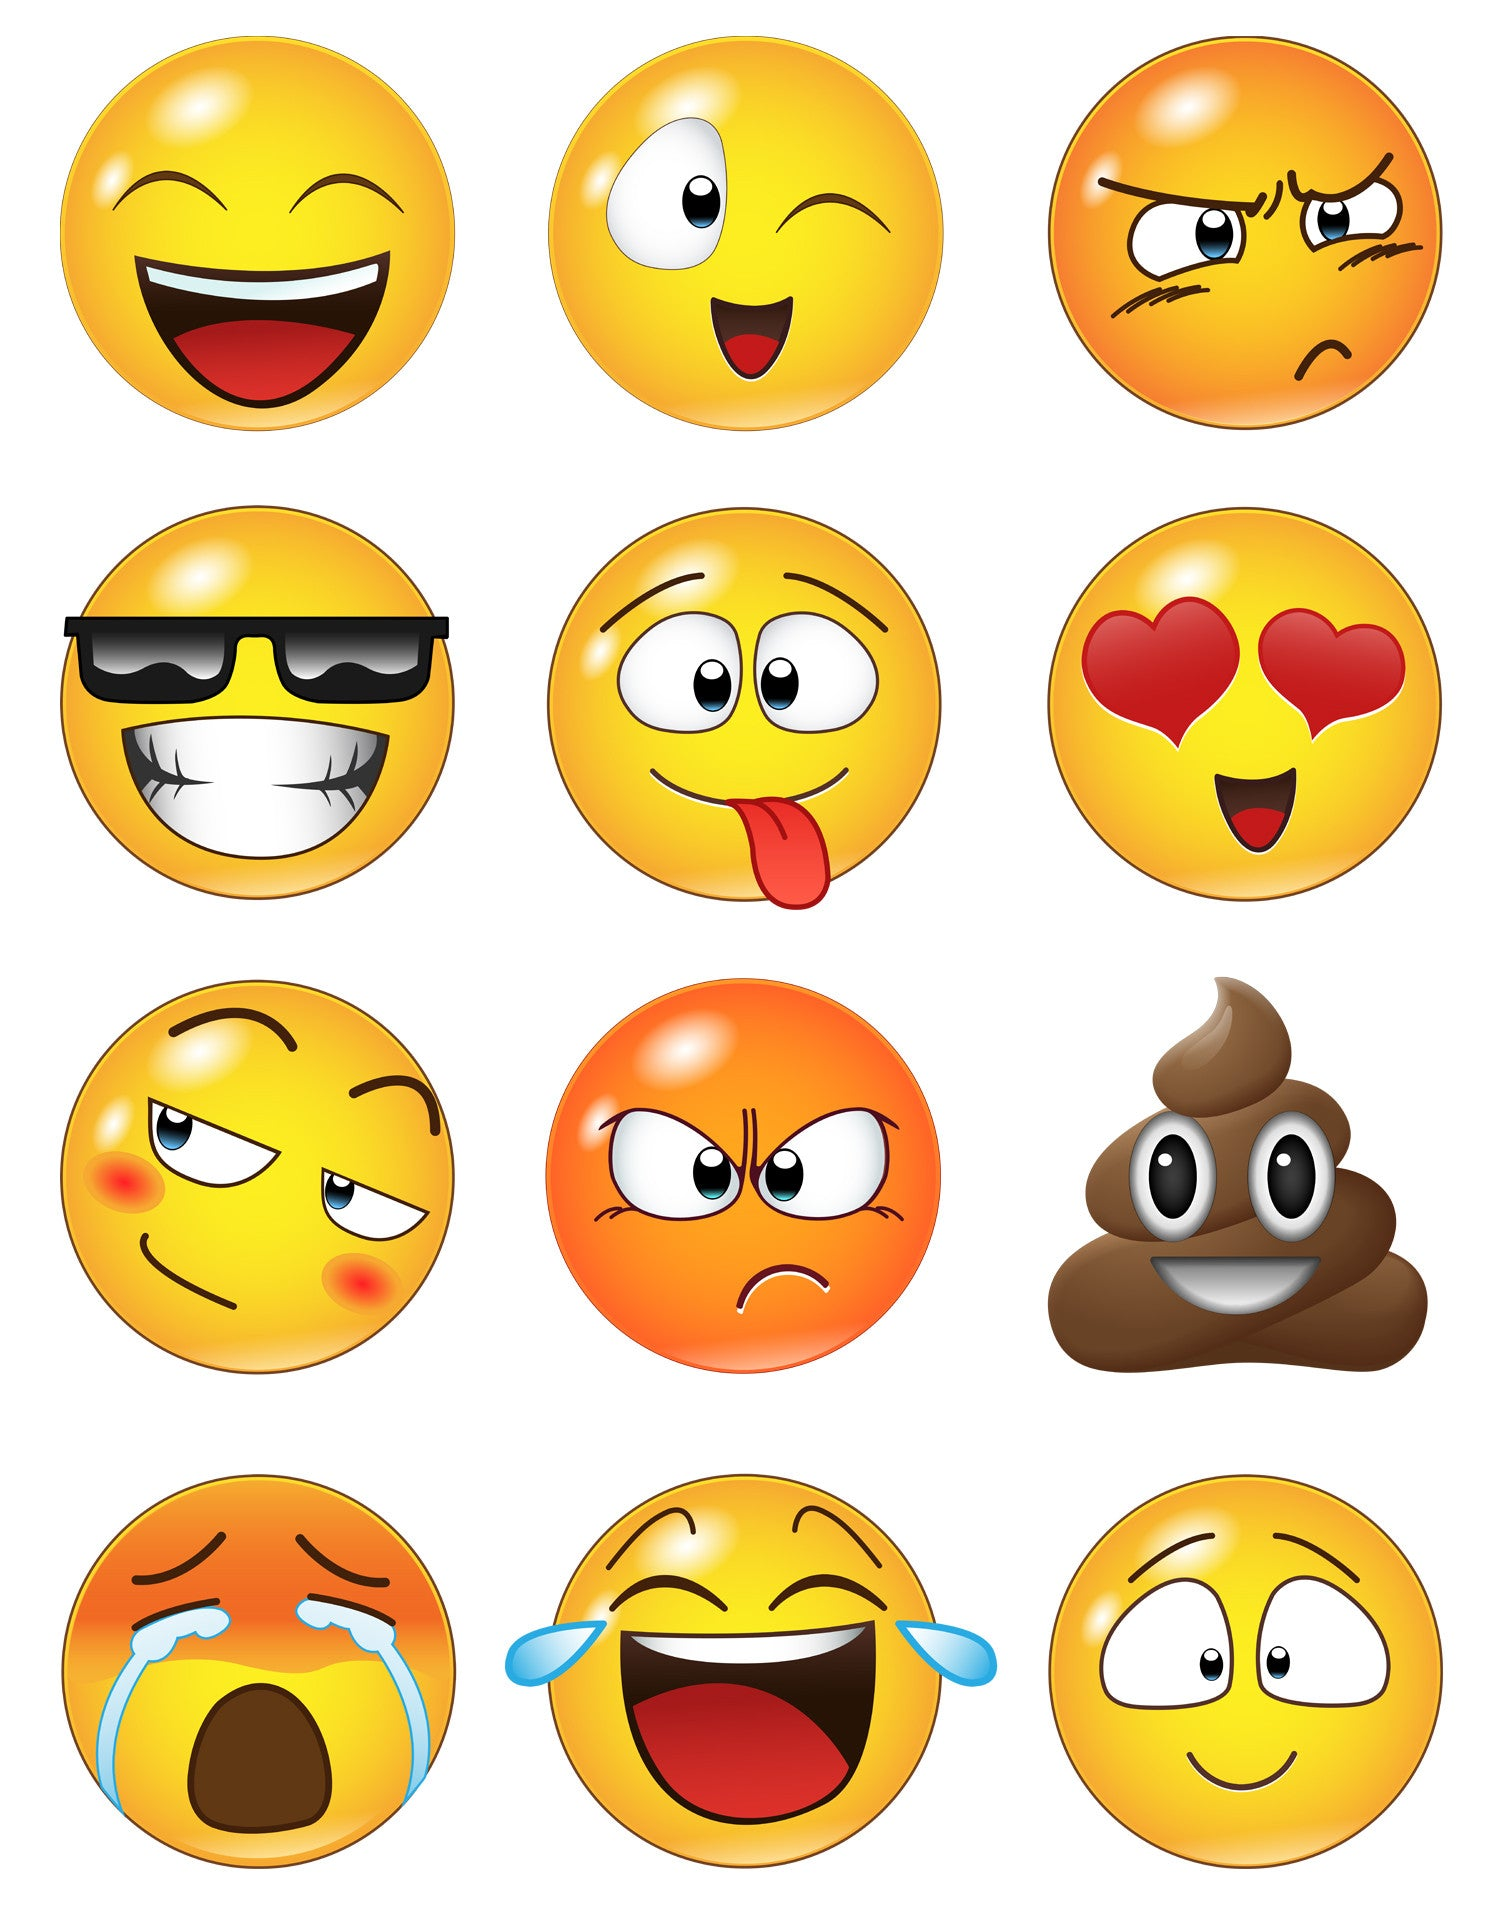 Emoji Wall Decals | Emoji Stickers for Wall | StickerBrand